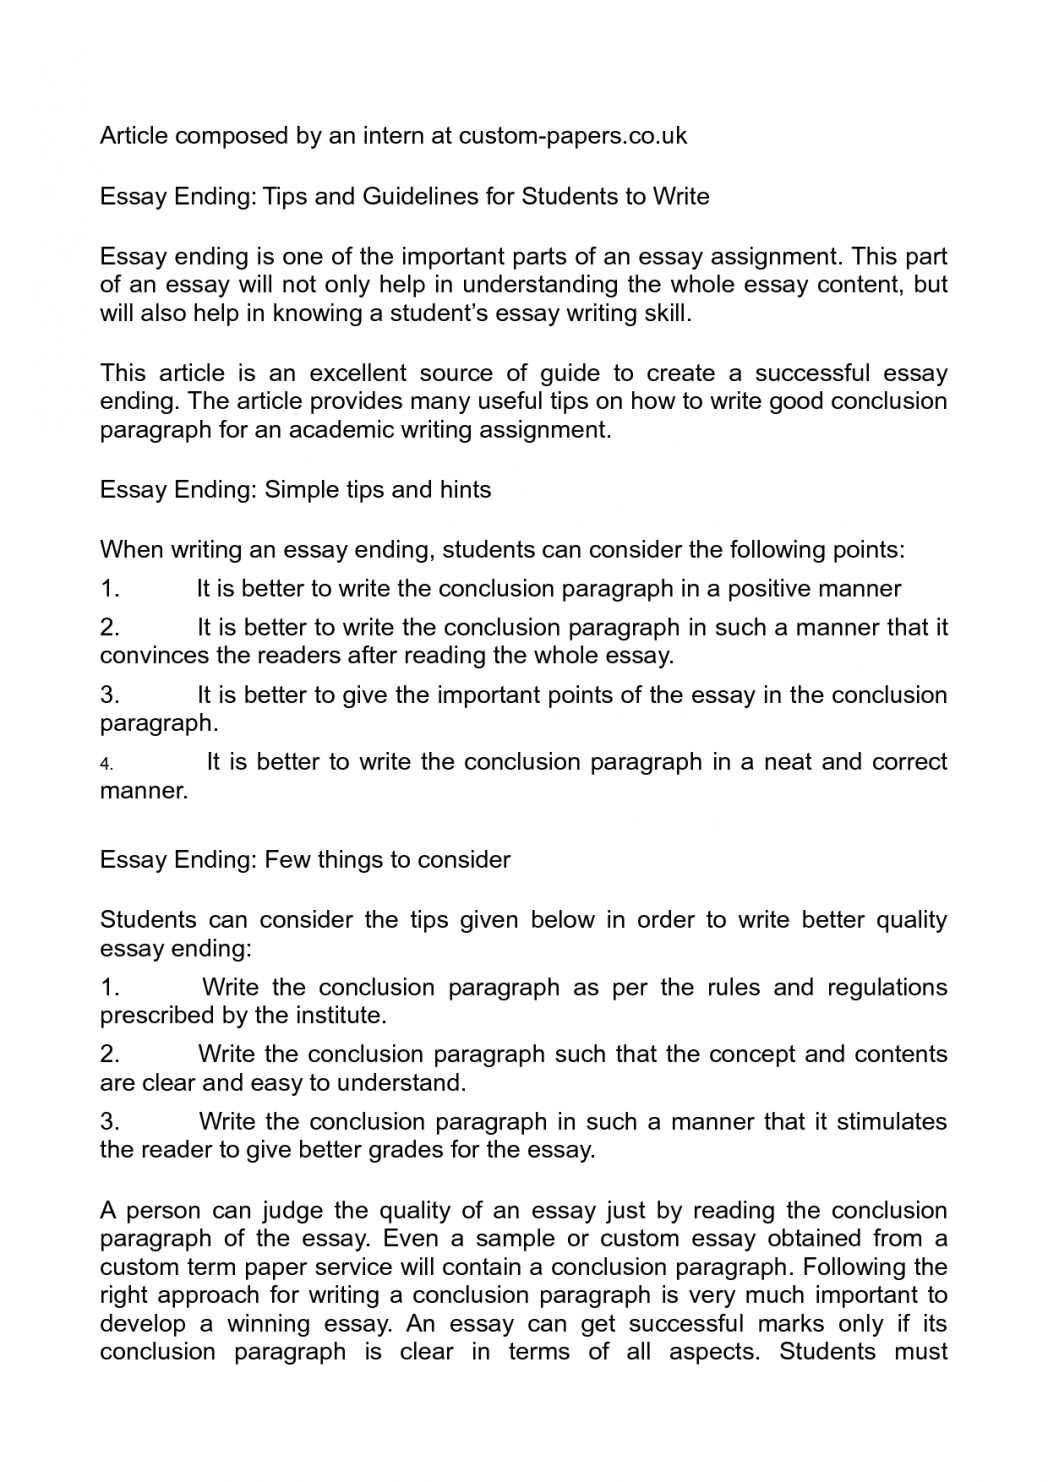 013 Good Ways To End An Essay Example Ending Is It Okay With Question Pzwnx My Wrong Outstanding What's The Best Way What A Argumentative College Full